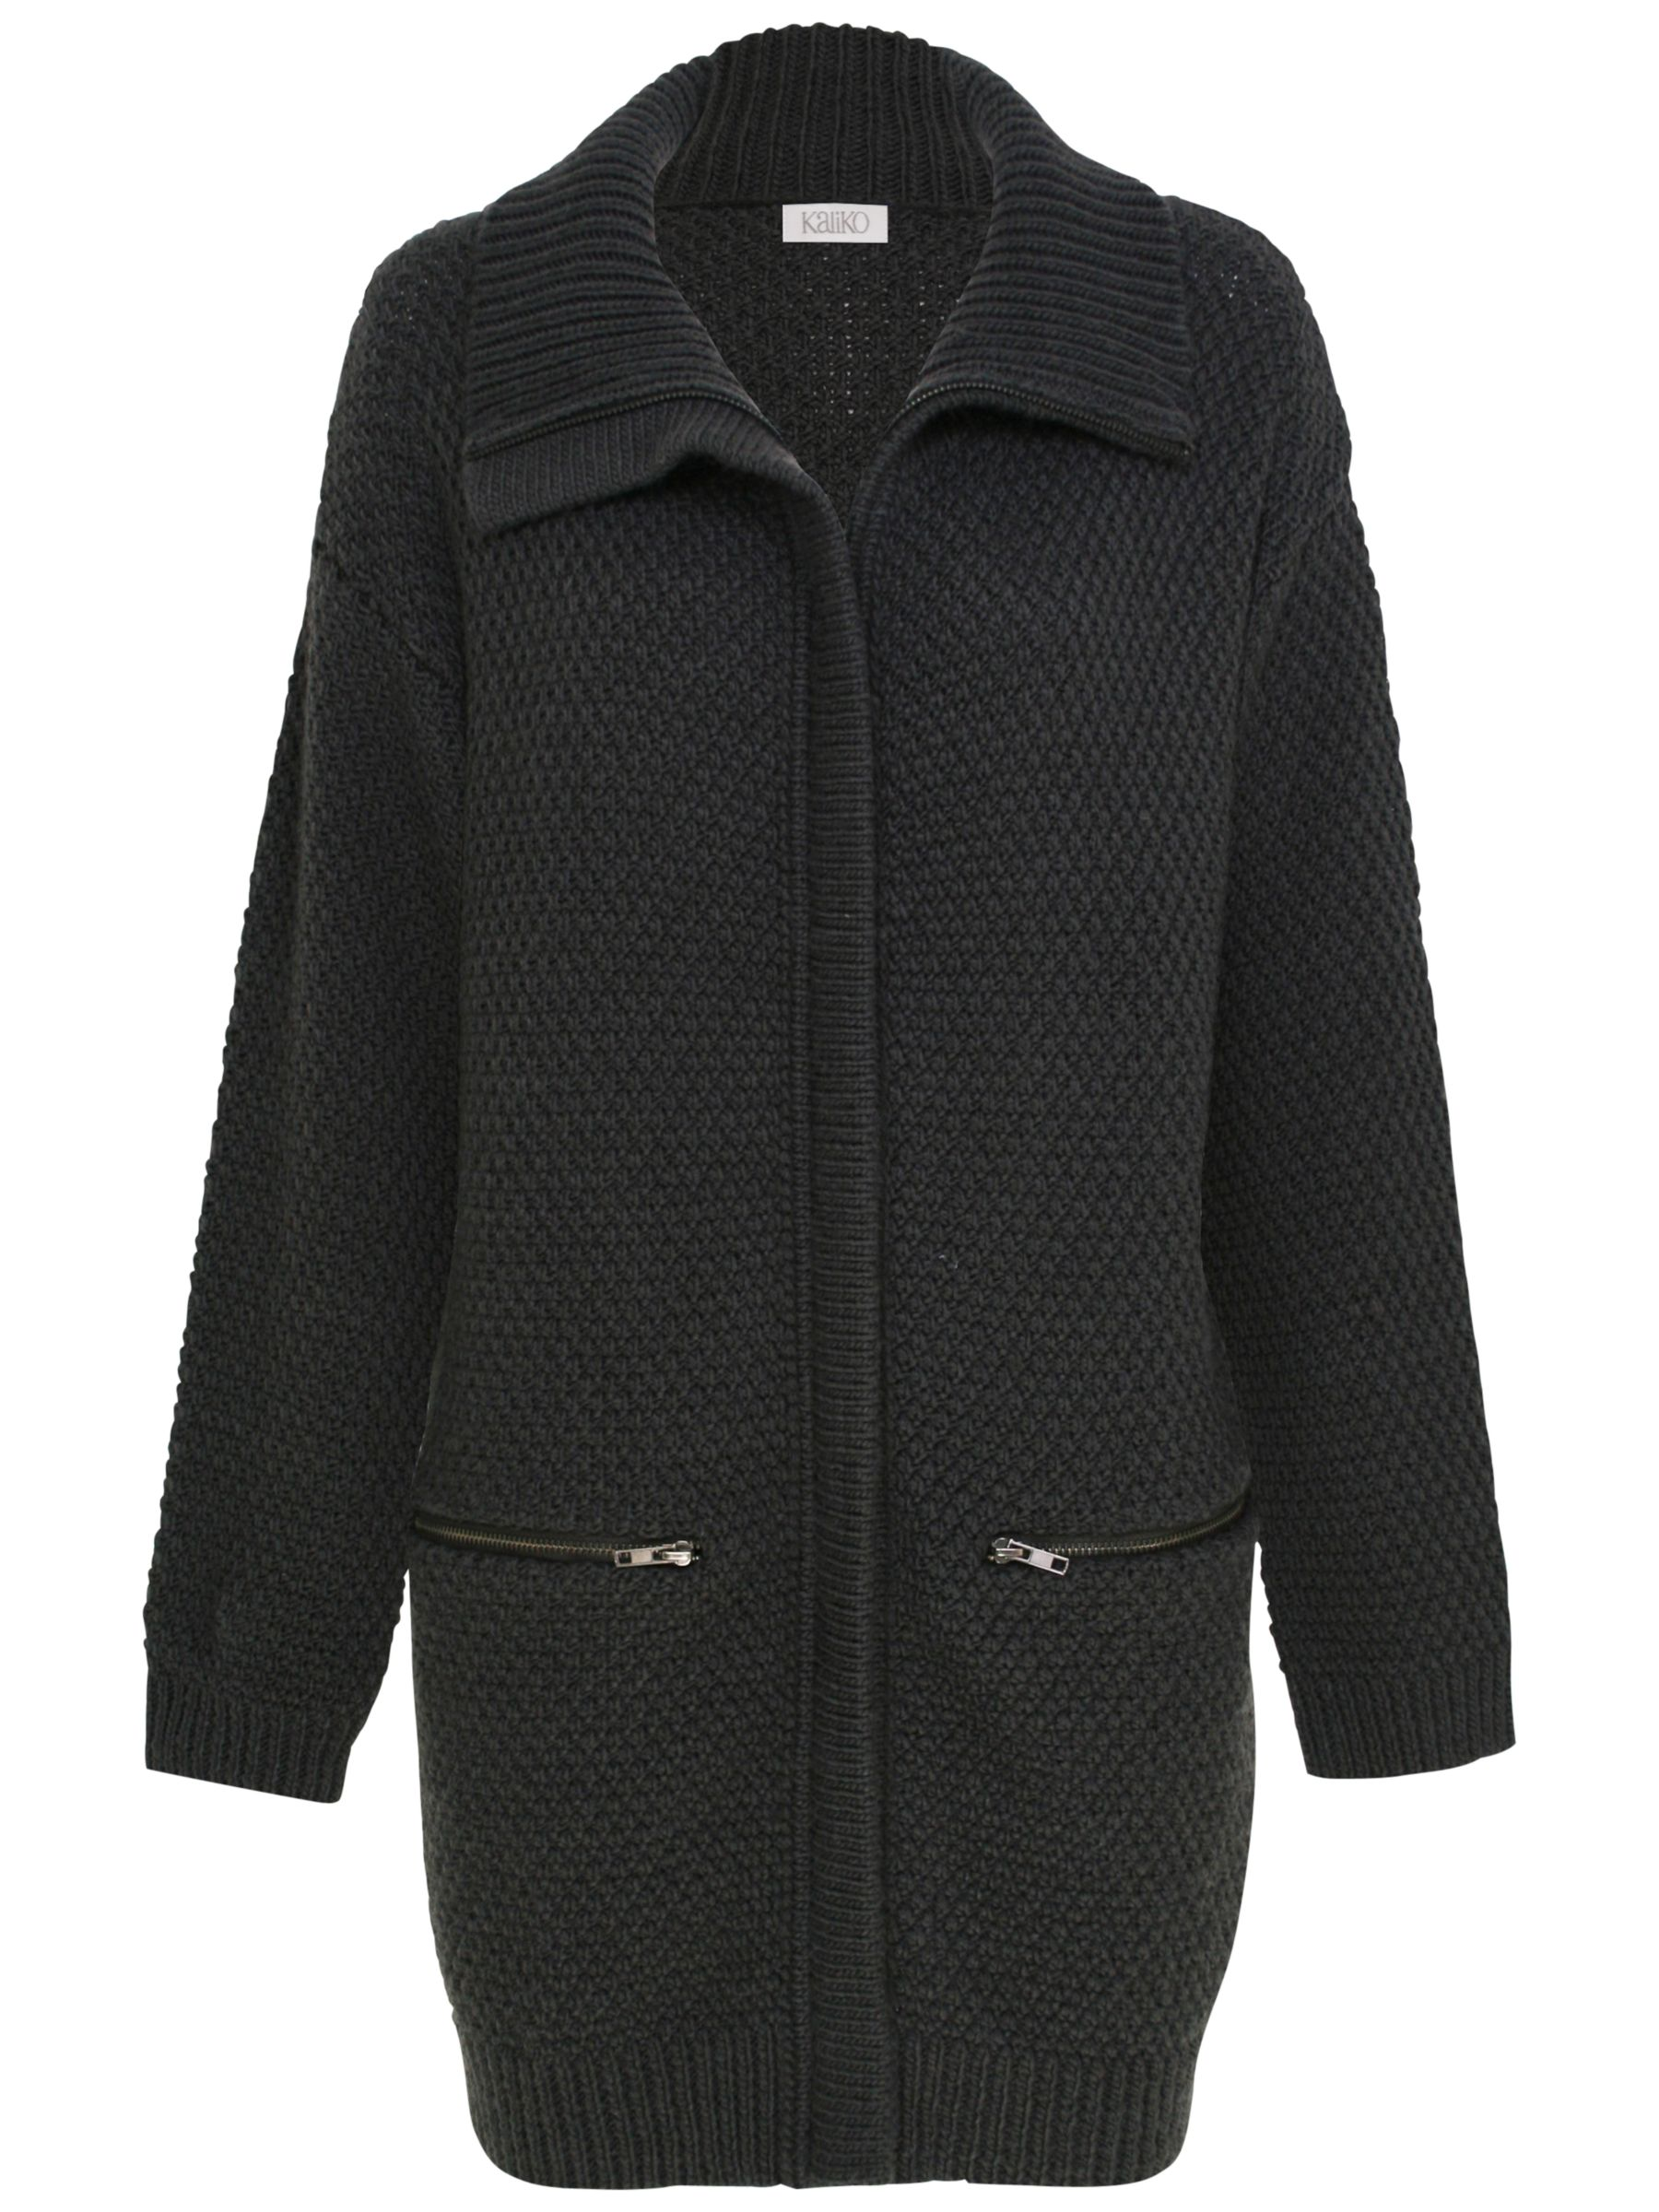 Kaliko Zip Pocket Cardigan, Dark Grey